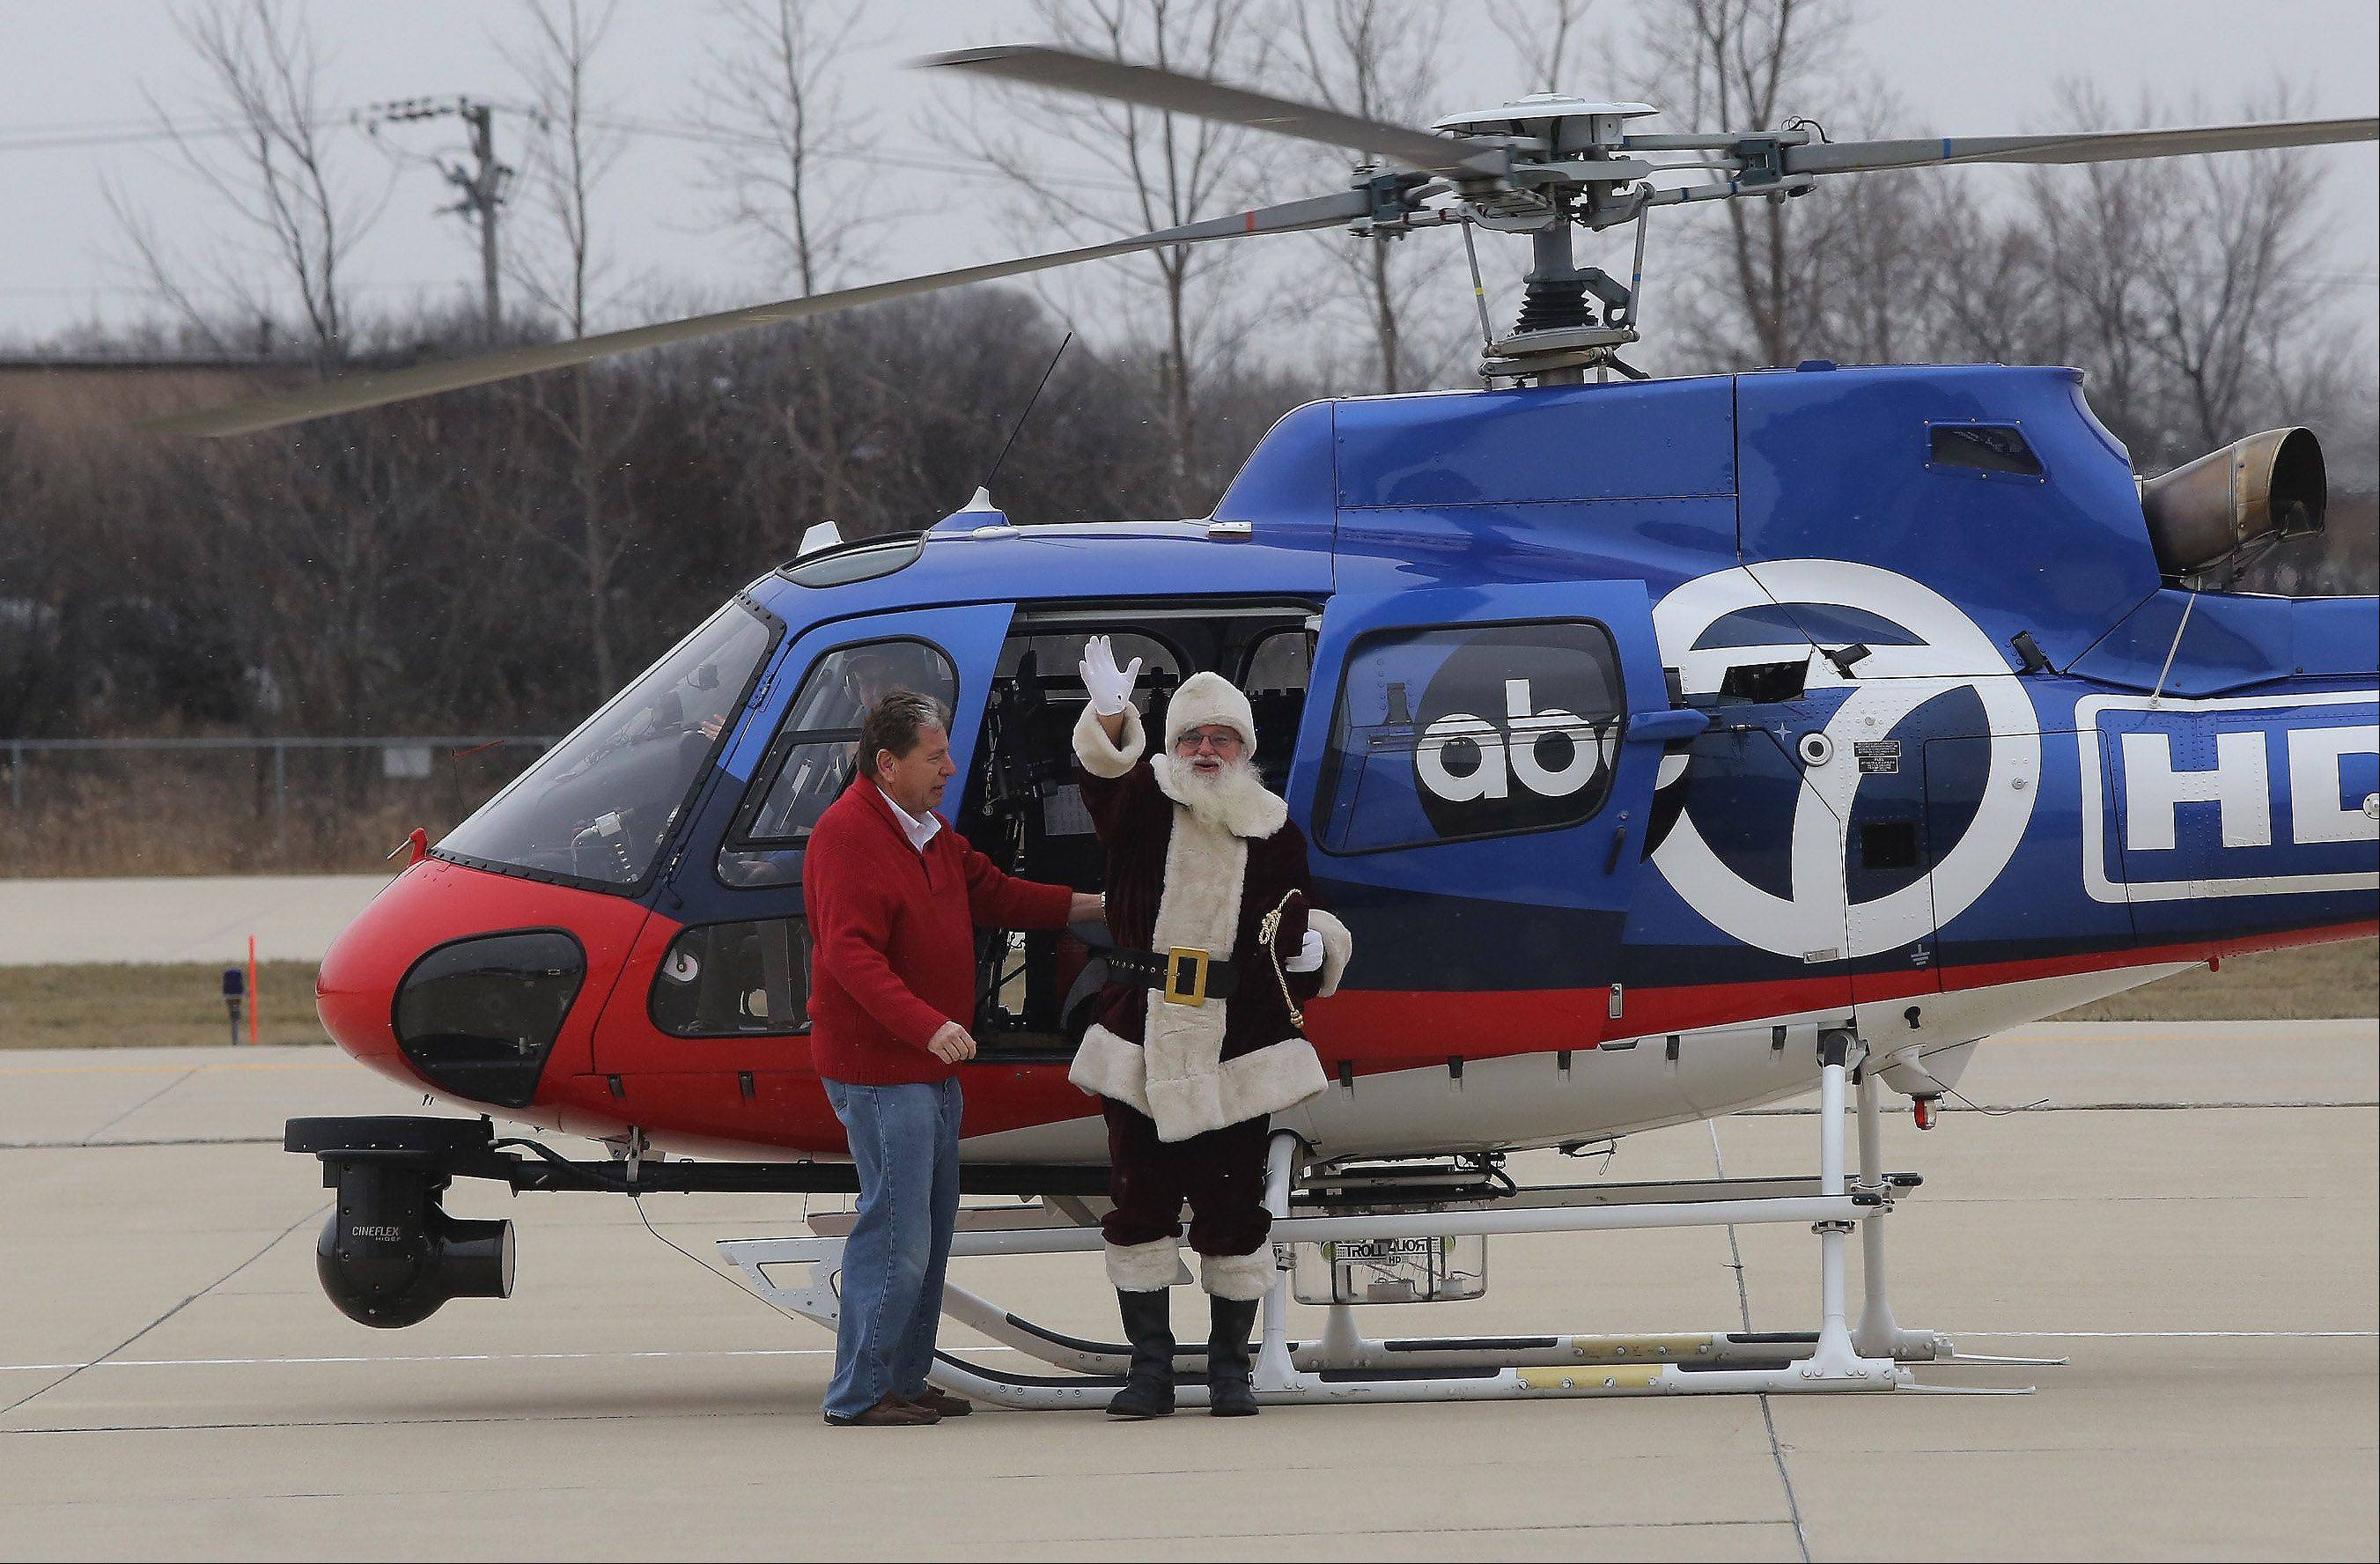 Northwest Flyers President J.P. Skip Barchfeld helps Santa get out of a helicopter Sunday as he arrives for Santa's Flight to Schaumburg at the Schaumburg Regional Airport. The holiday event, sponsored by the Schaumburg Park District and The Northwest Flyers, drew about 300 to the airport for a visit with Santa, along with games and crafts.